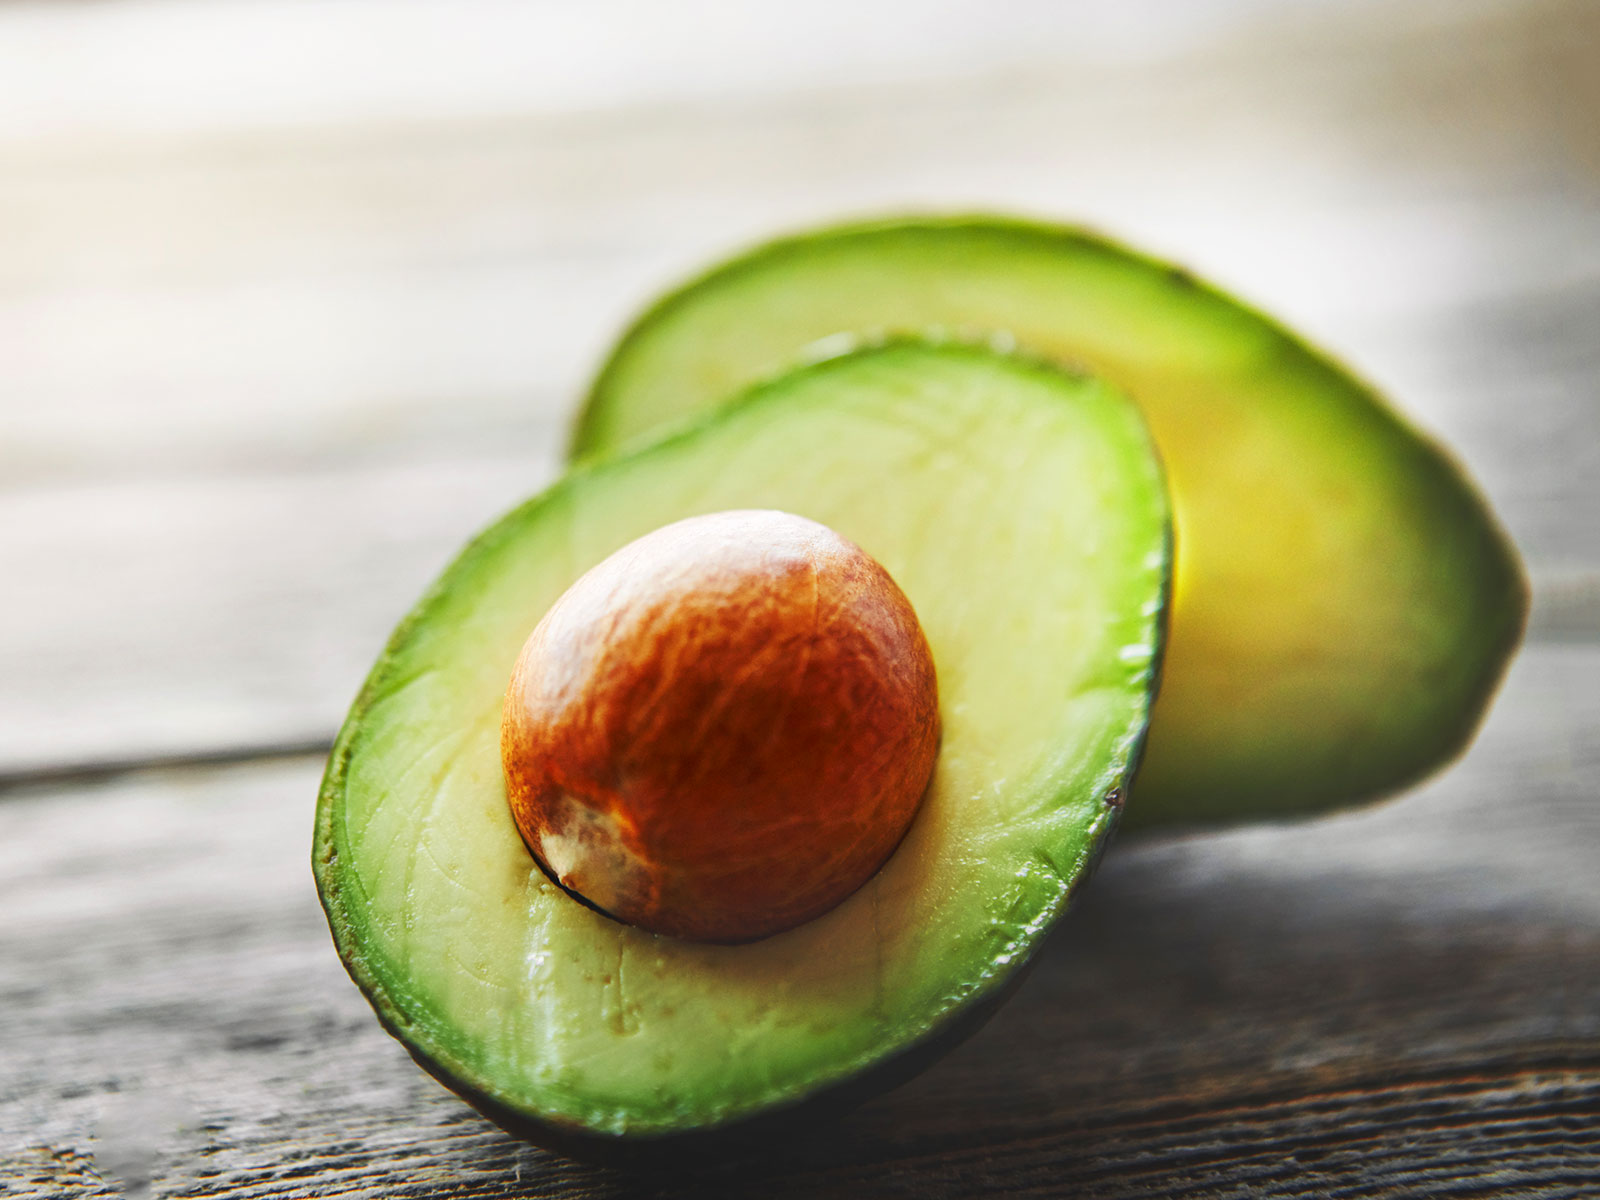 Avocado Seeds Have Untapped Health Benefits